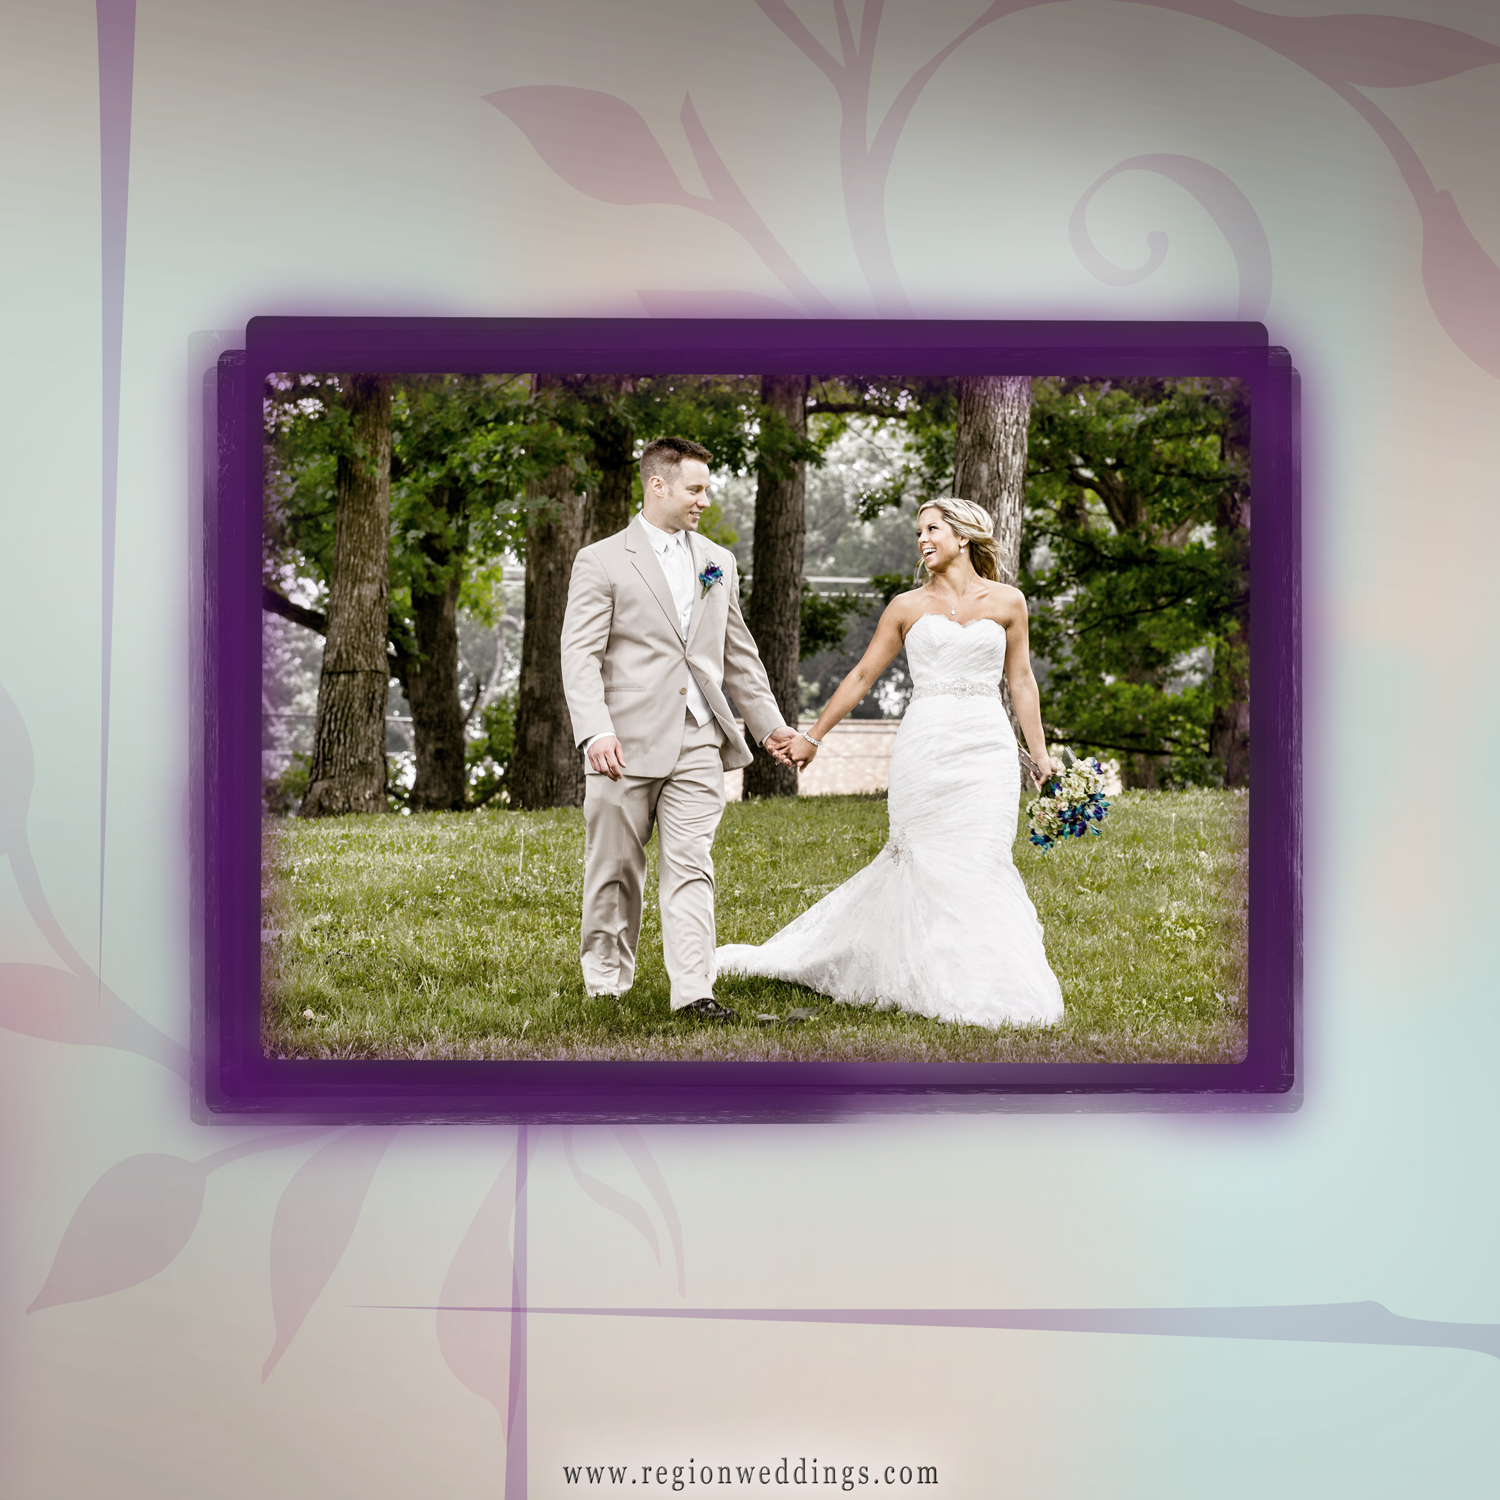 The back cover of a wedding album featuring a bride and groom walking in a field at the Lake County Fairgrounds in Crown Point, Indiana.